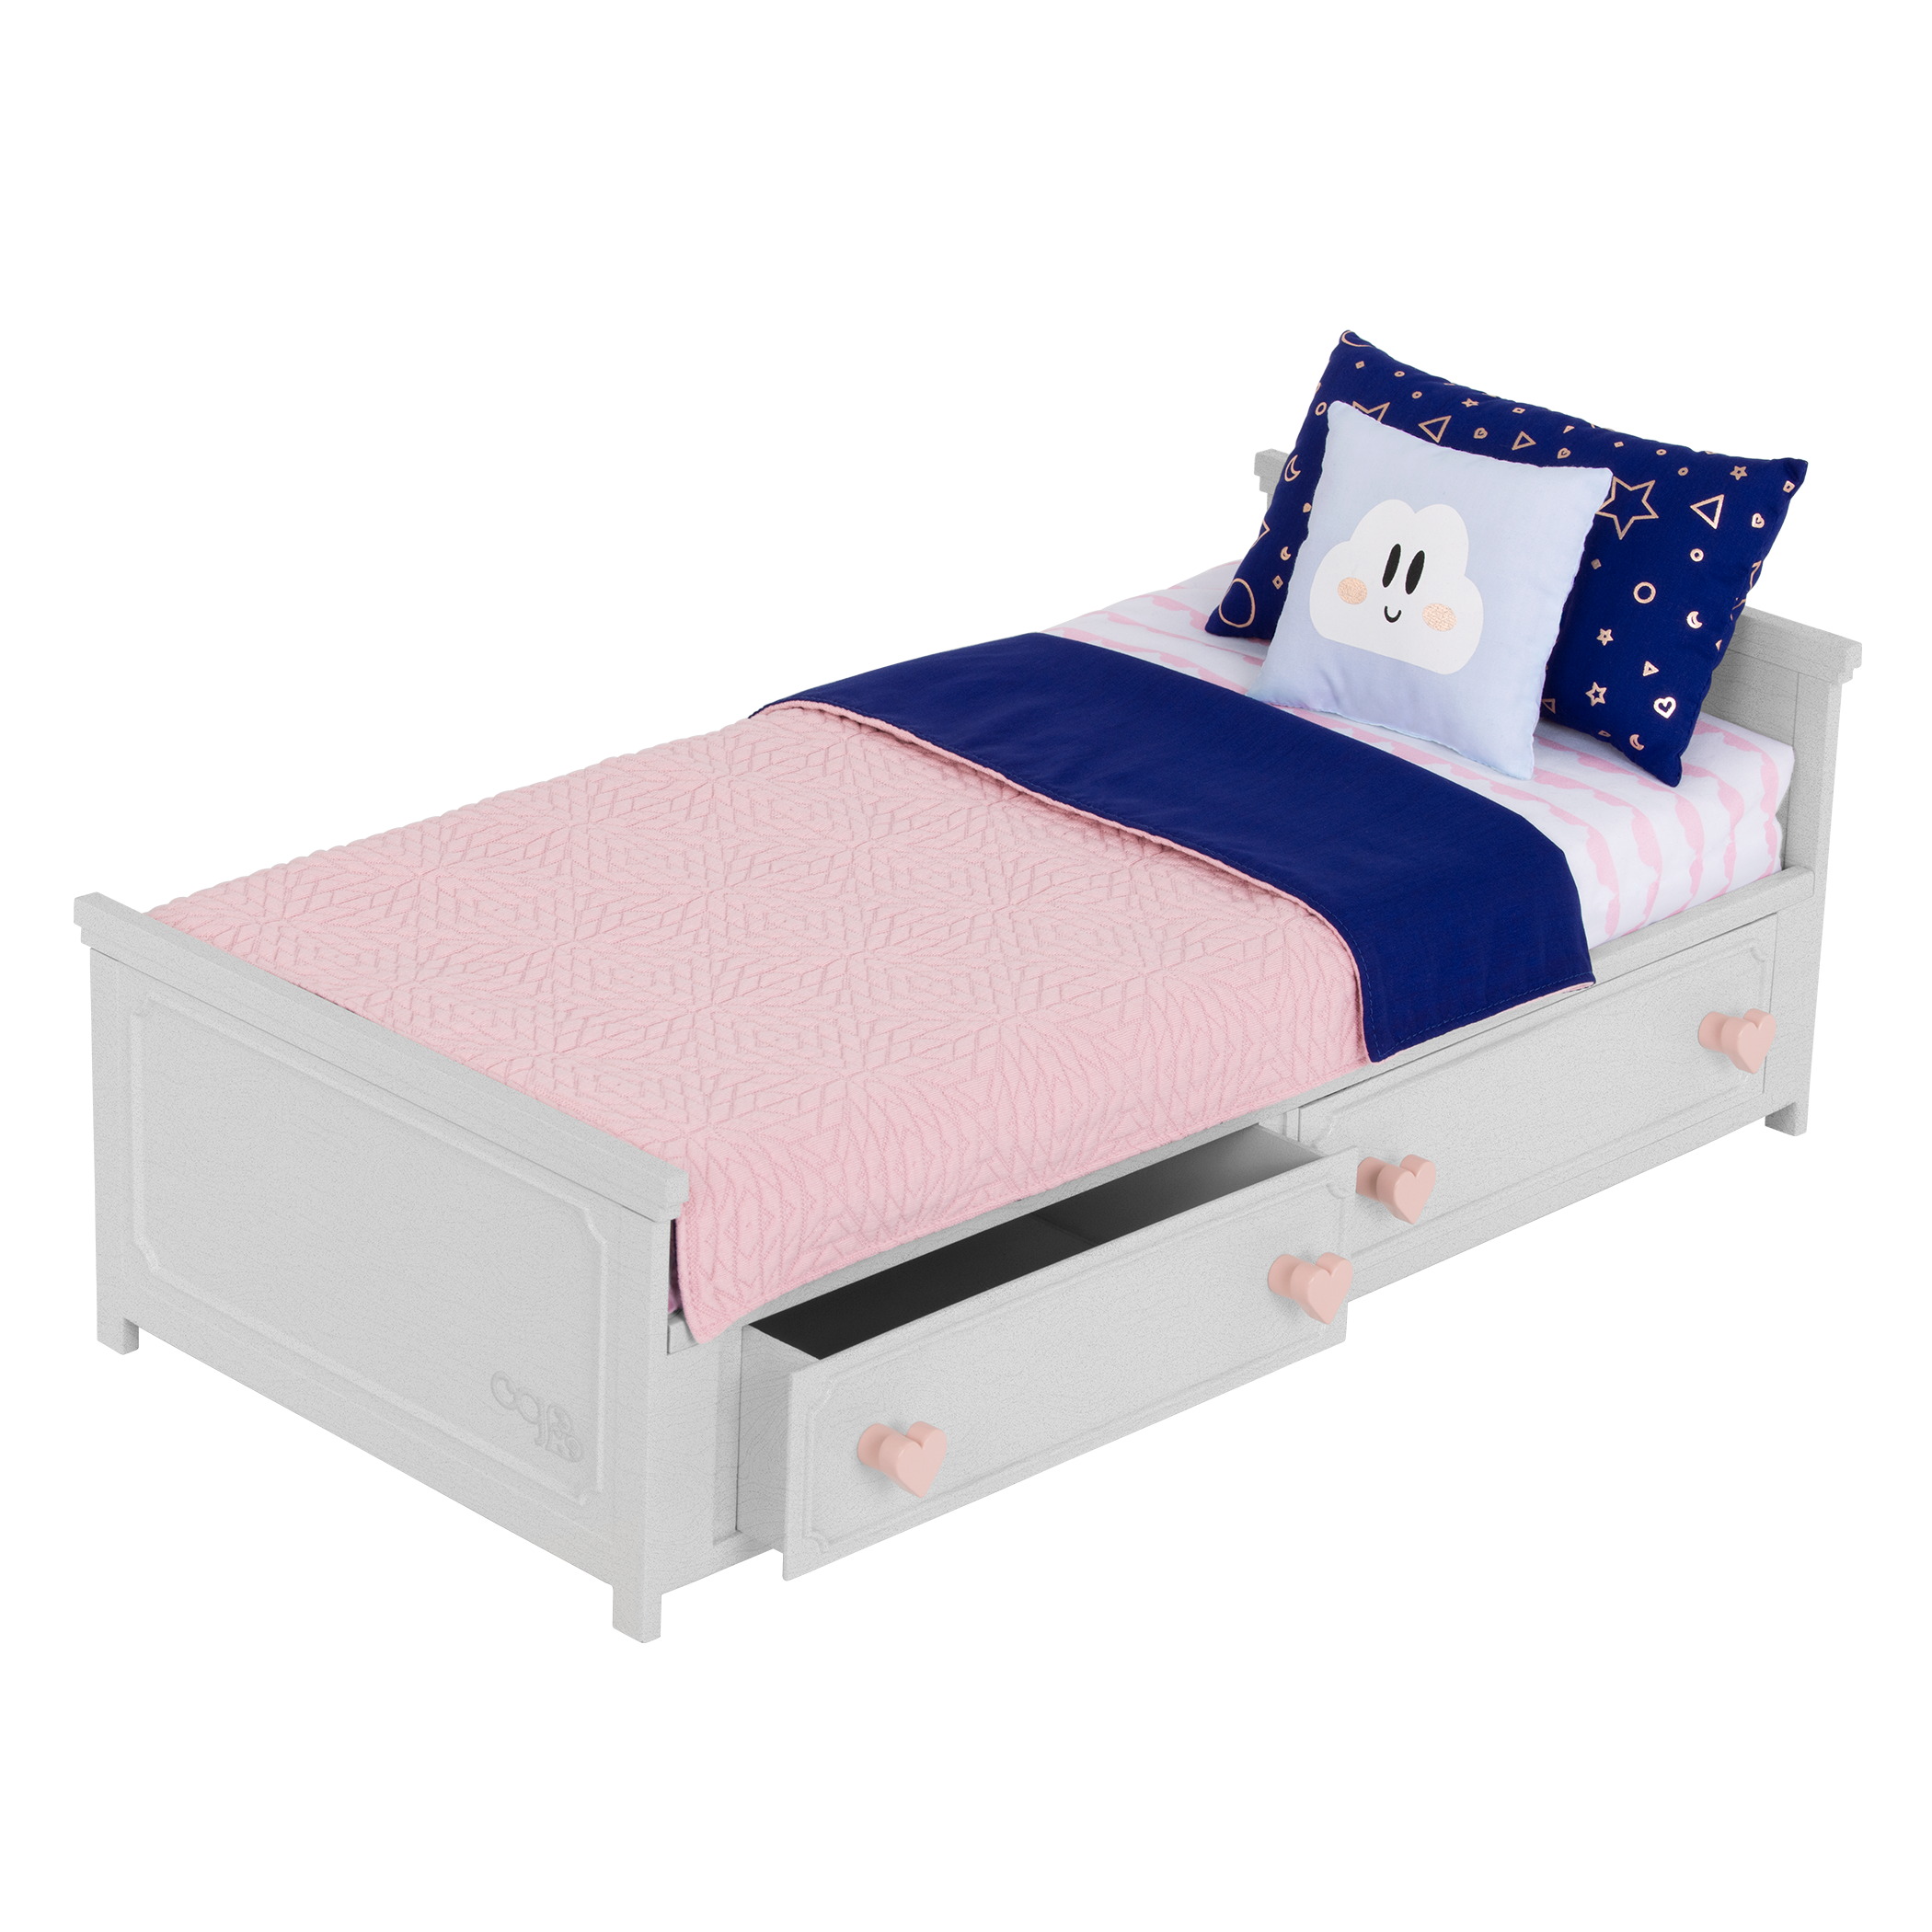 Our Generation Starry Slumbers Platform Bed for 18-inch Dolls